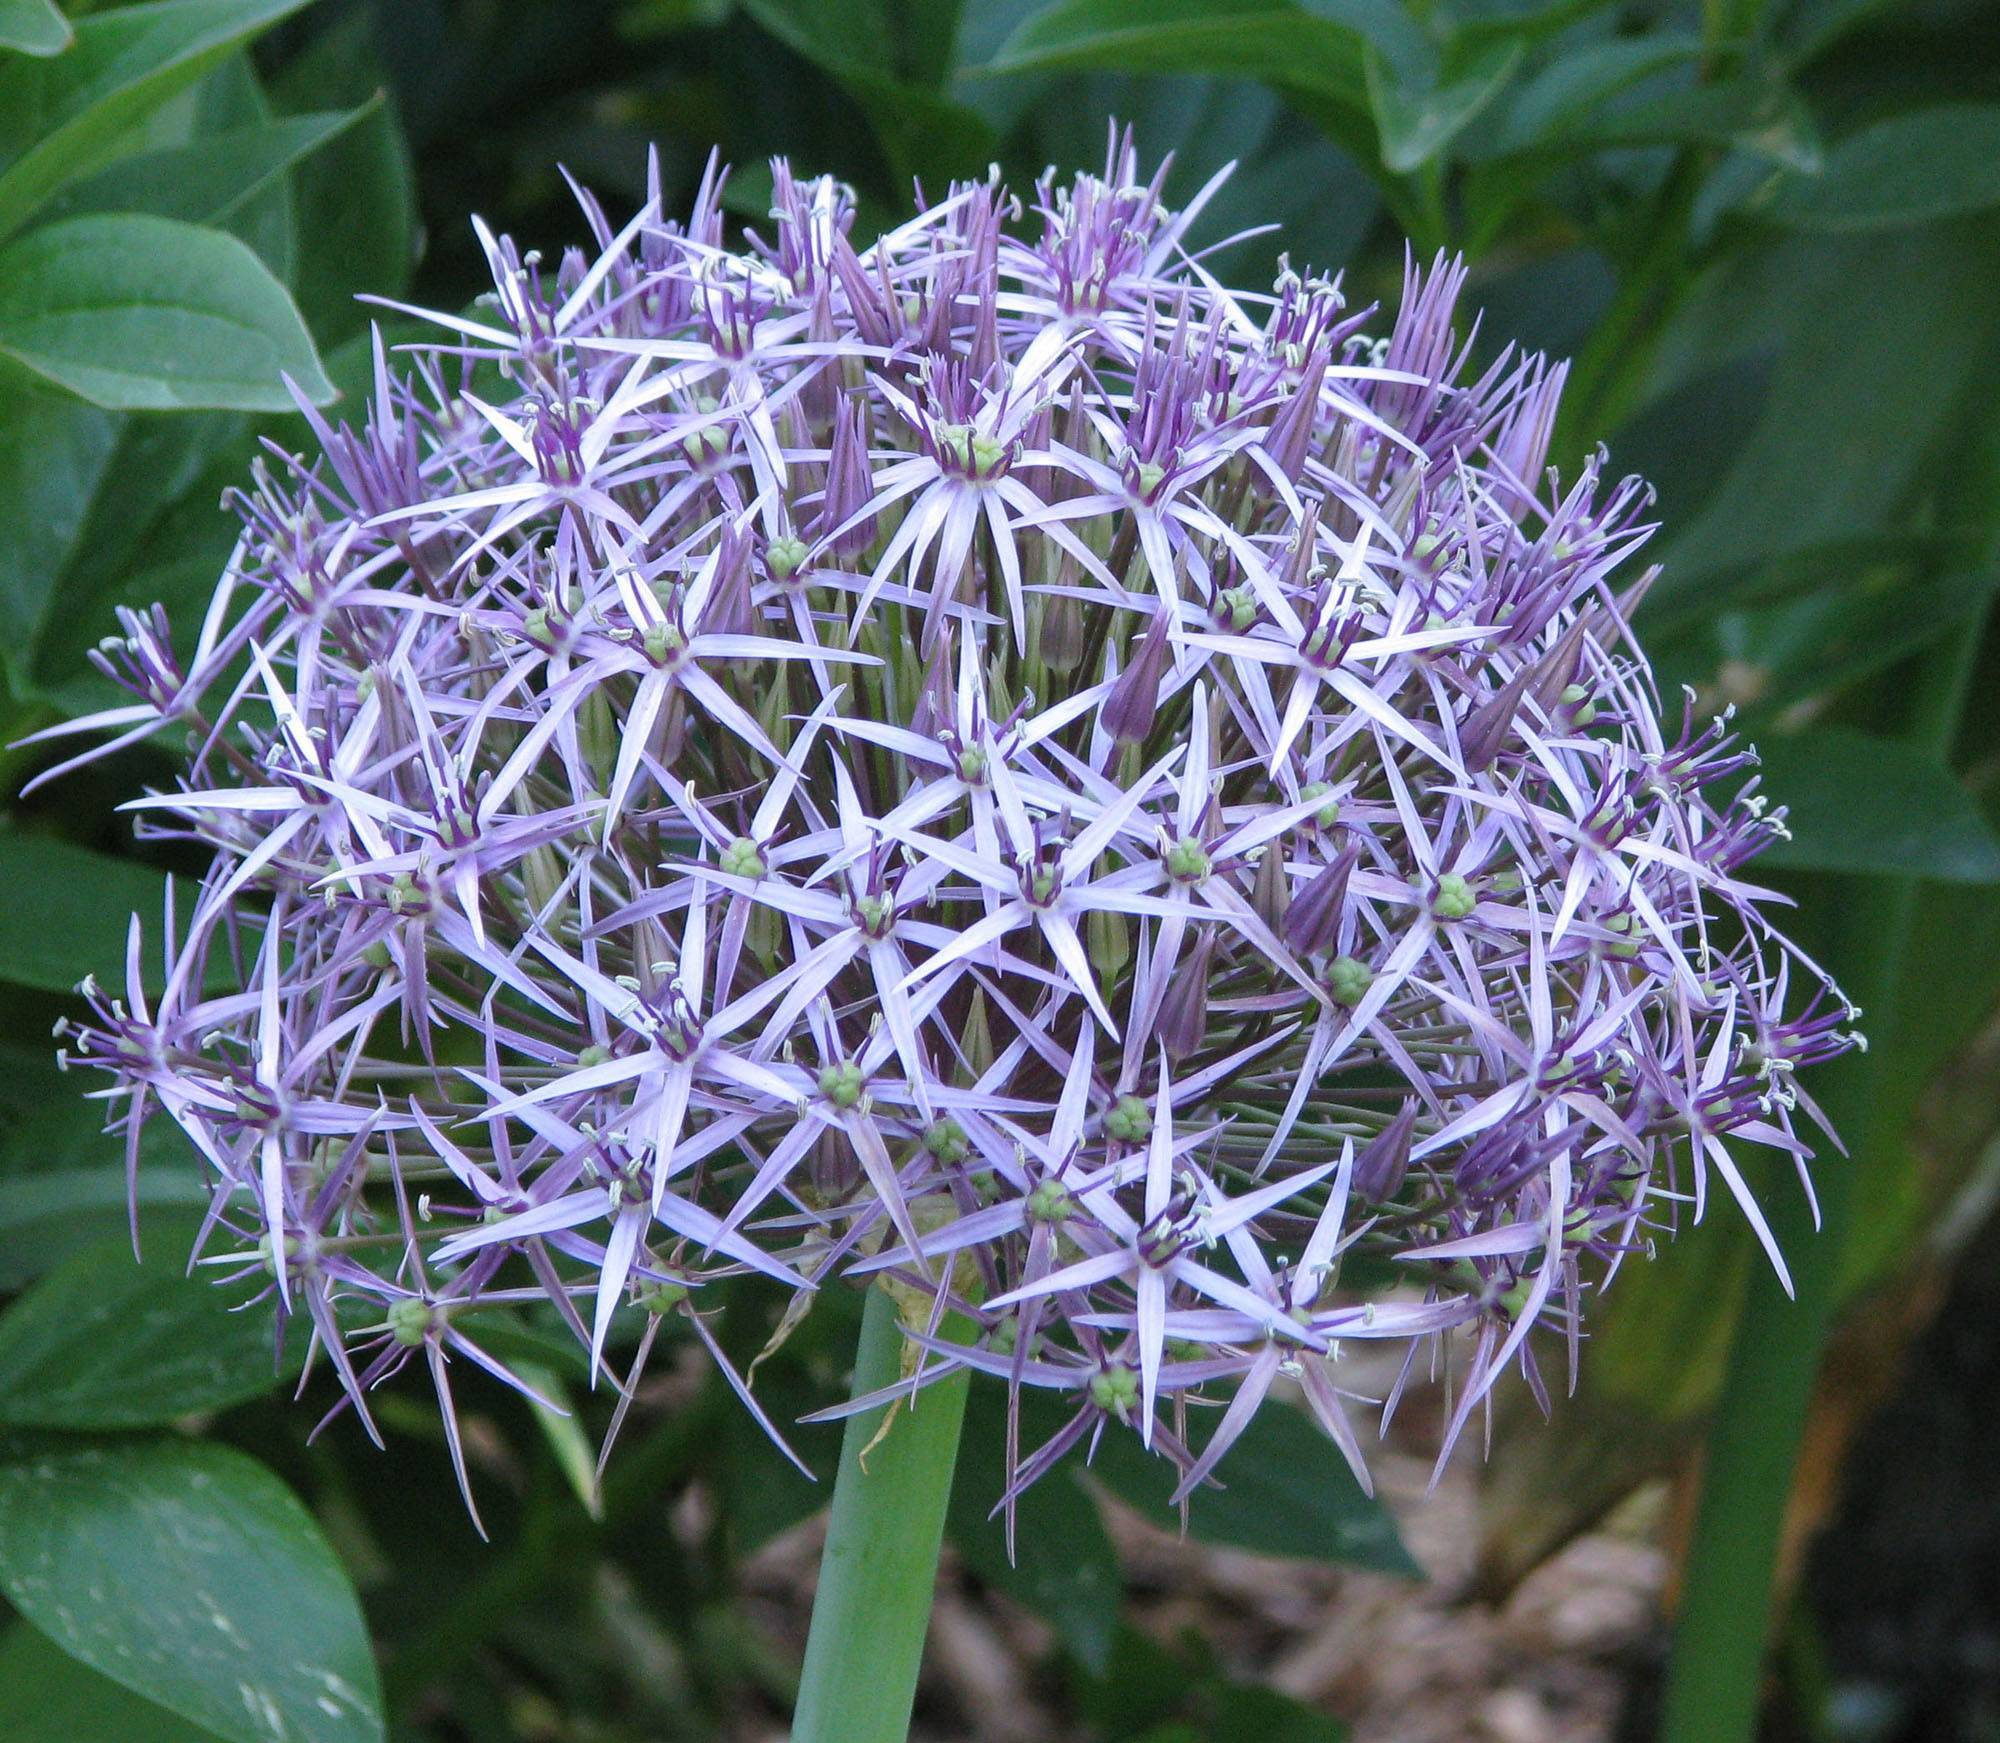 Flowering onions -- alliums -- mostly appear as pastel pompoms atop slender stalks. Plant this ornamental onion for beauty and not for eating by deer or humans.